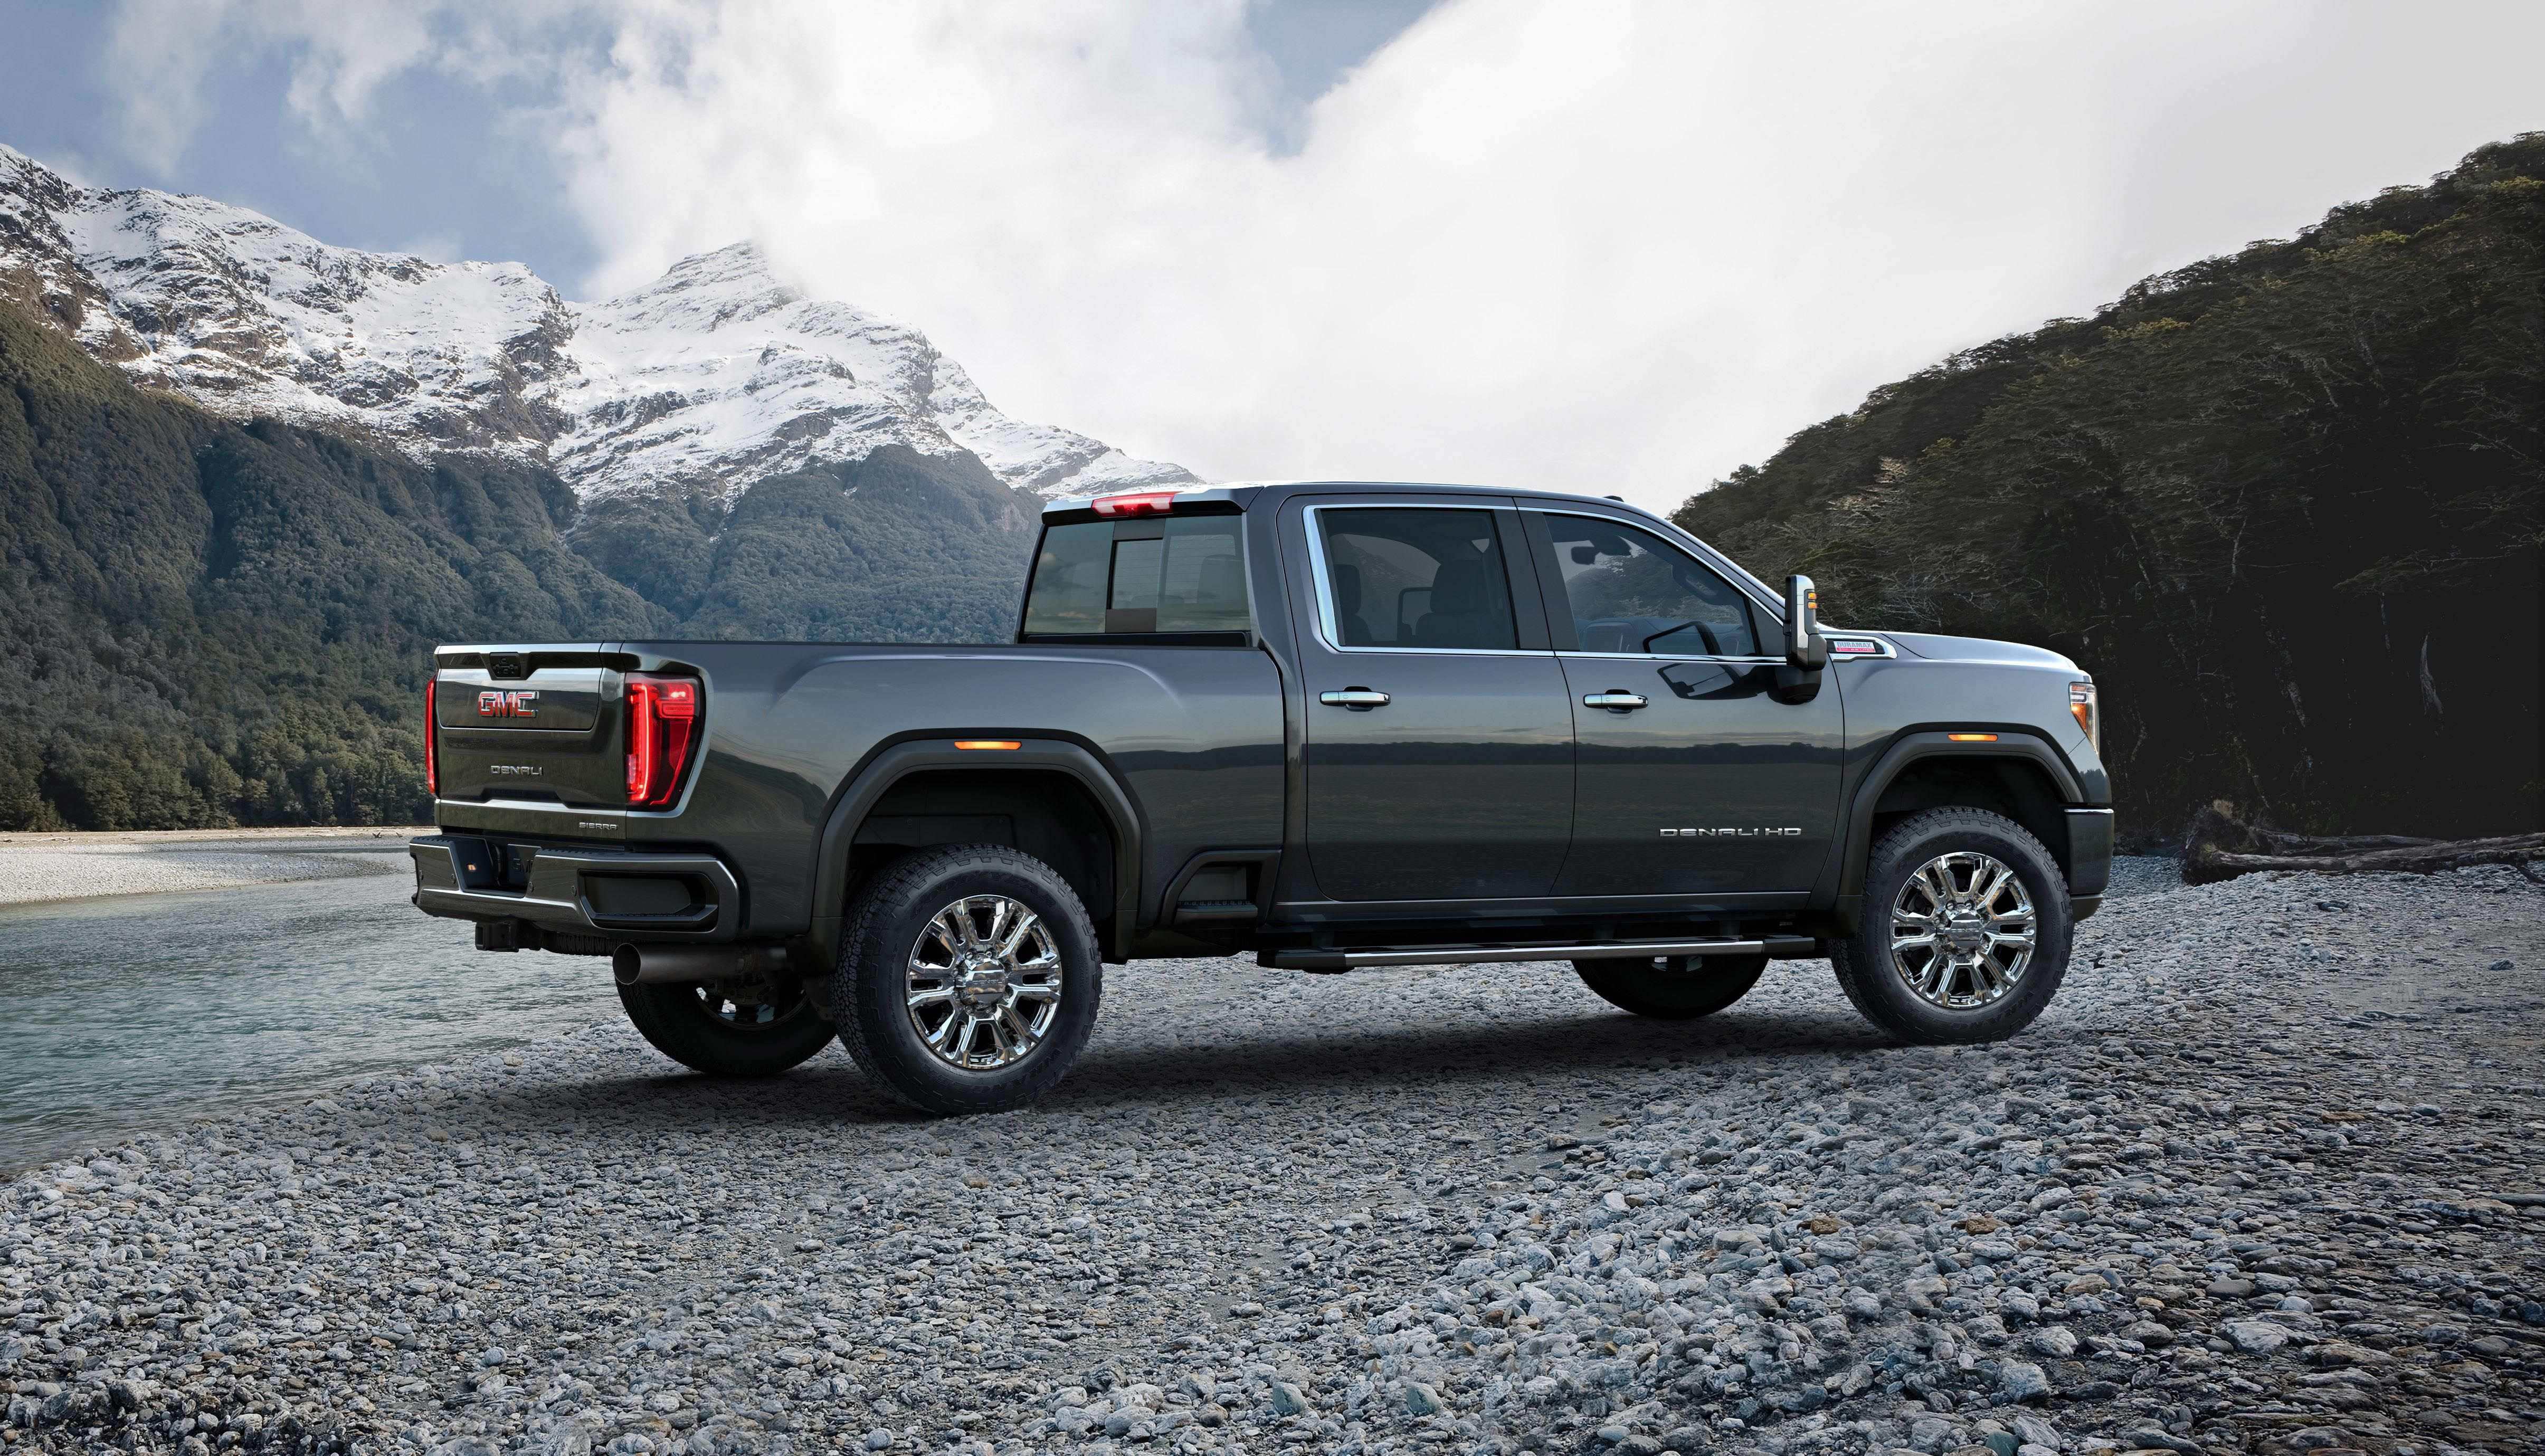 32 New Gmc Colors For 2020 Price and Review with Gmc Colors For 2020